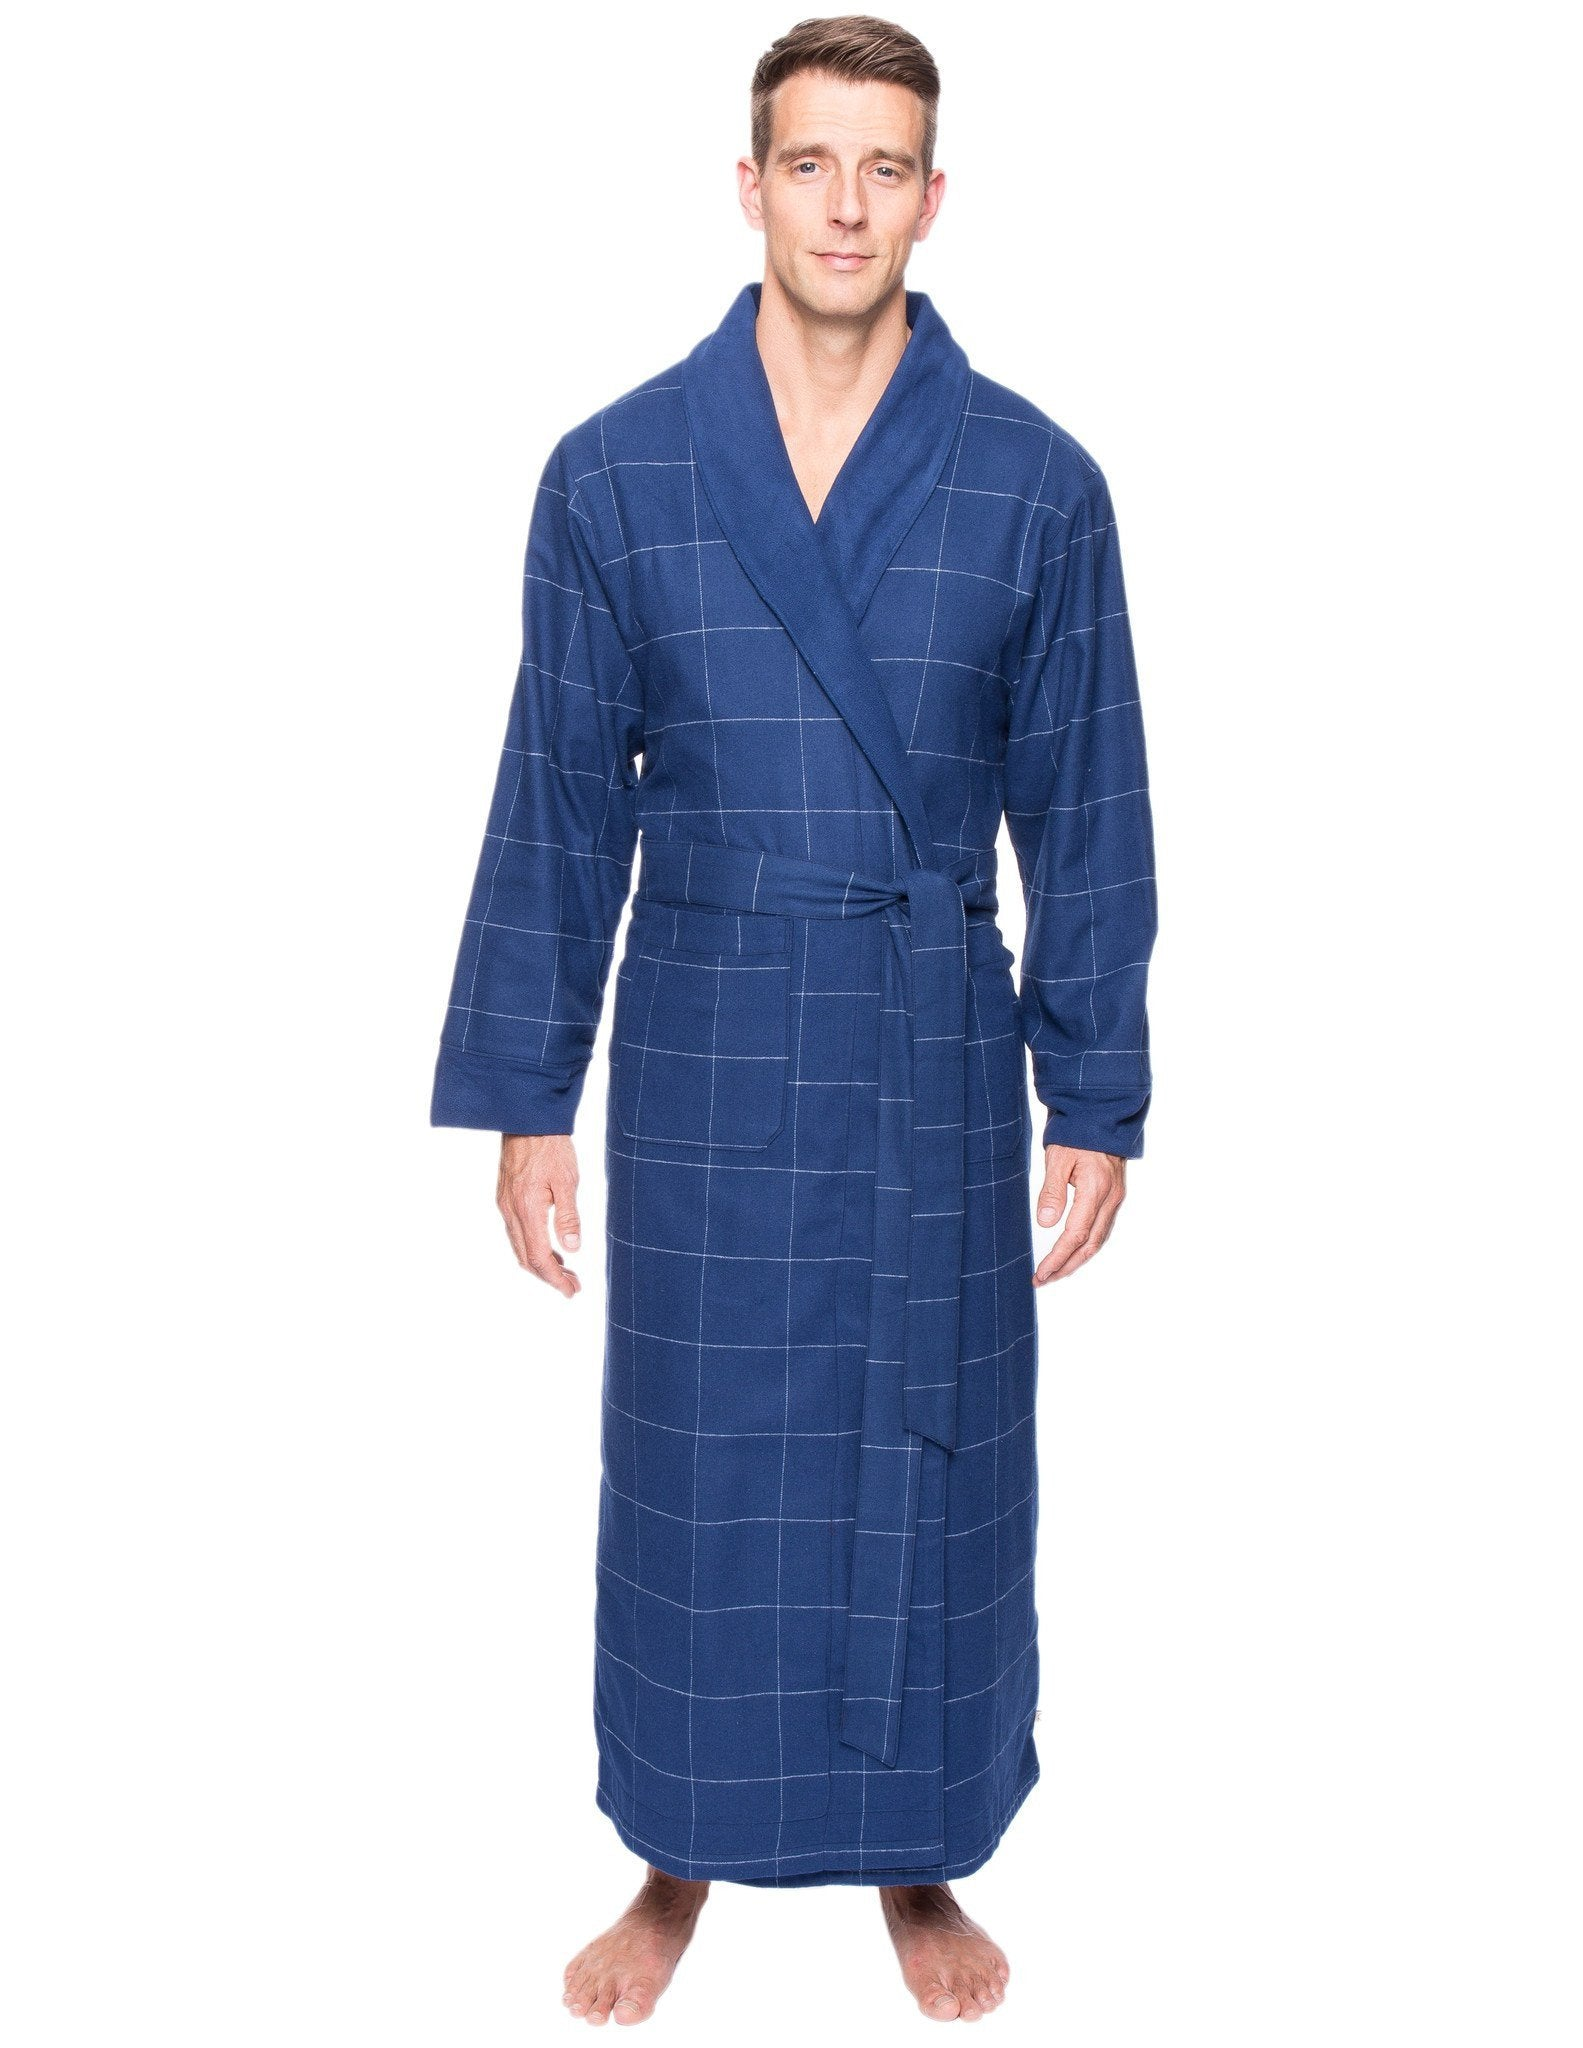 Men's Premium 100% Cotton Flannel Fleece Lined Robe - Windowpane Checks Dark Blue